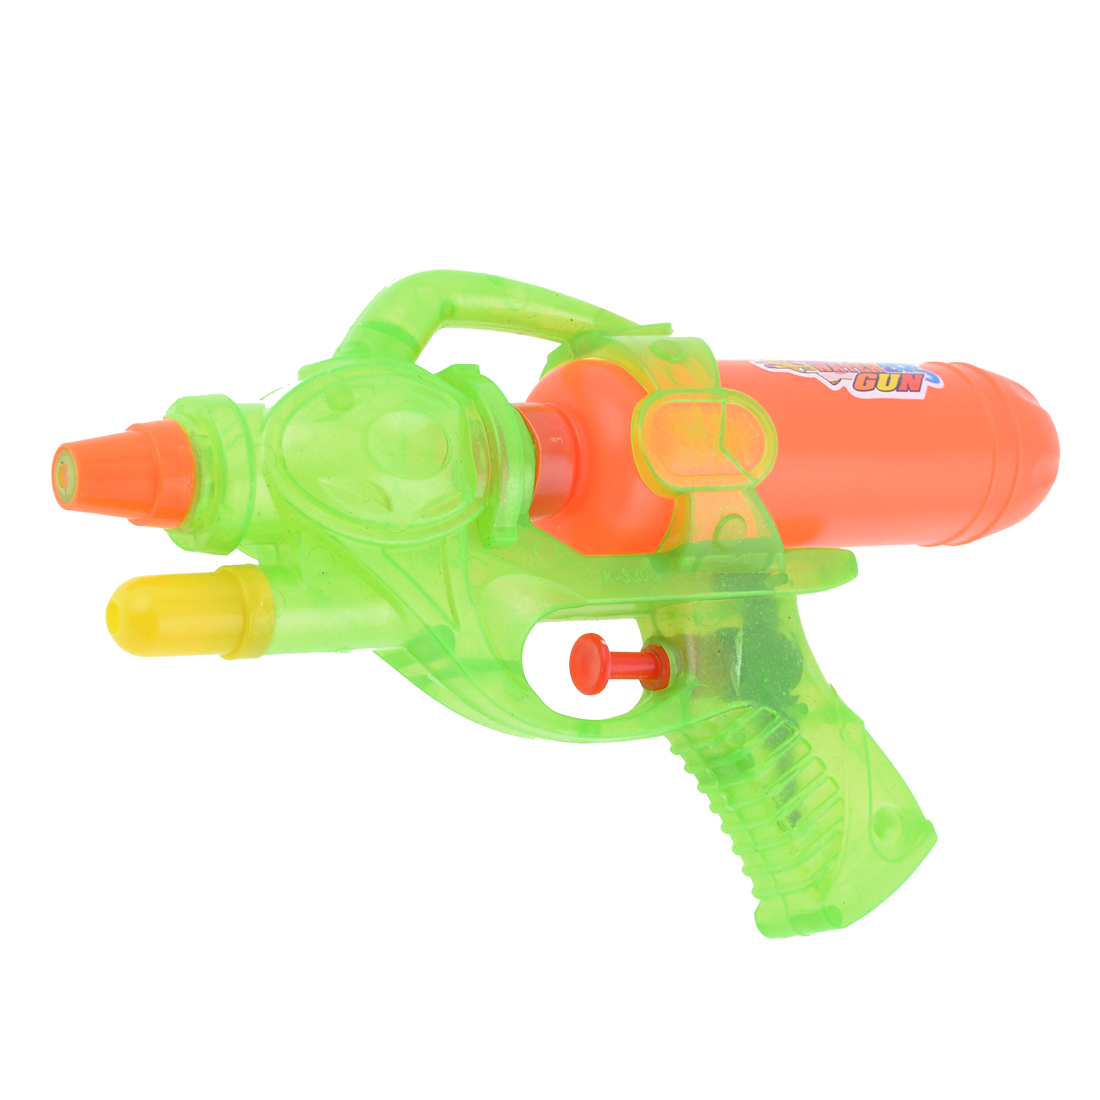 Children Yellow Green Red Plastic Game Fun Water Squirt Toy Gun